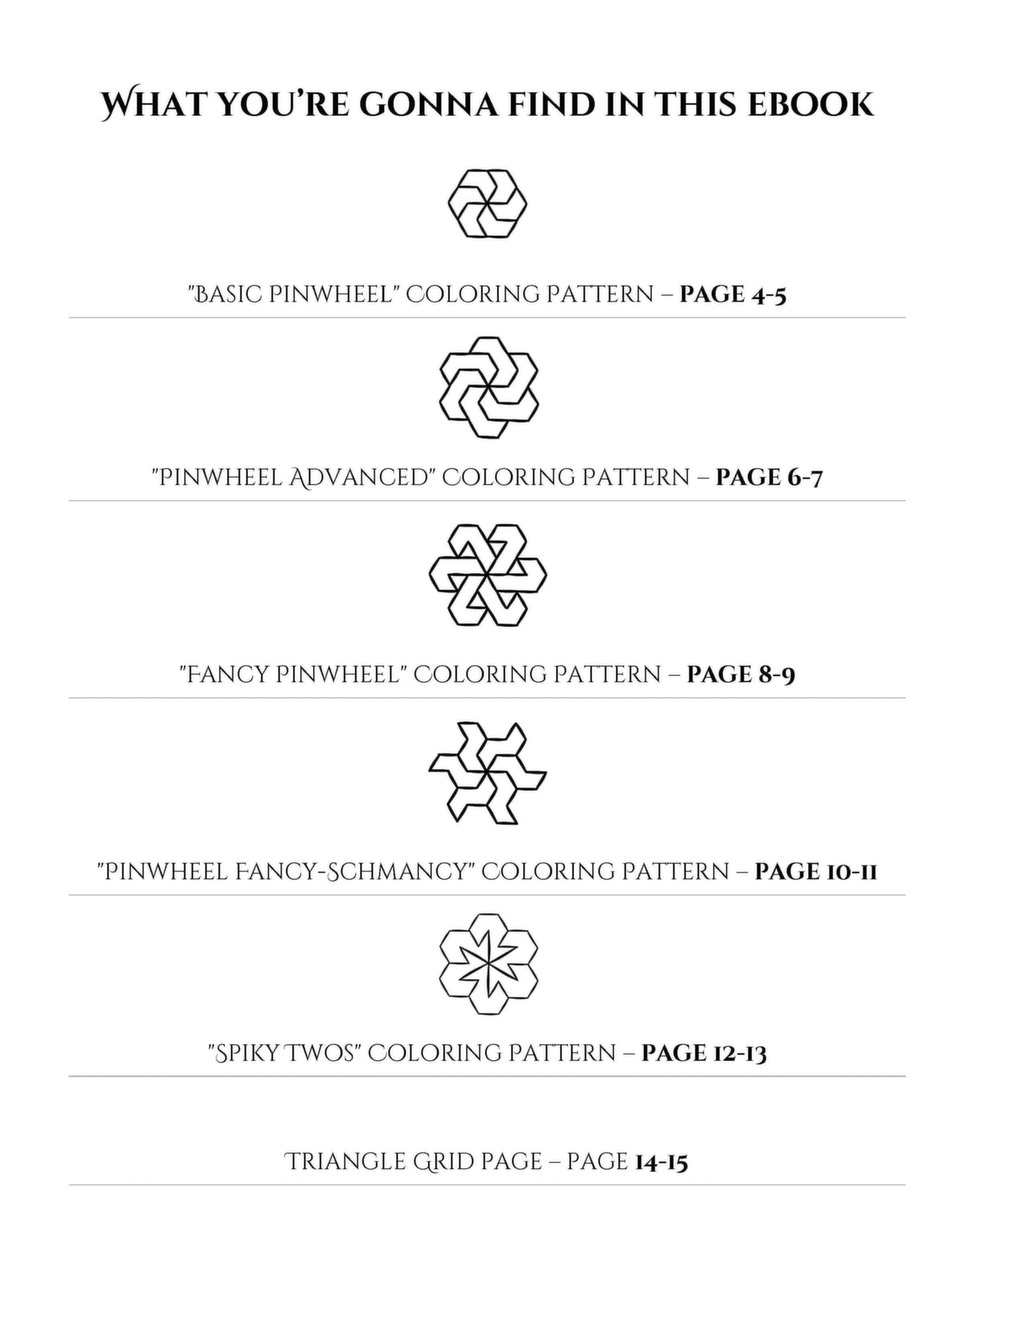 Geomegic free printable patterns ebook 1 fandeluxe Ebook collections